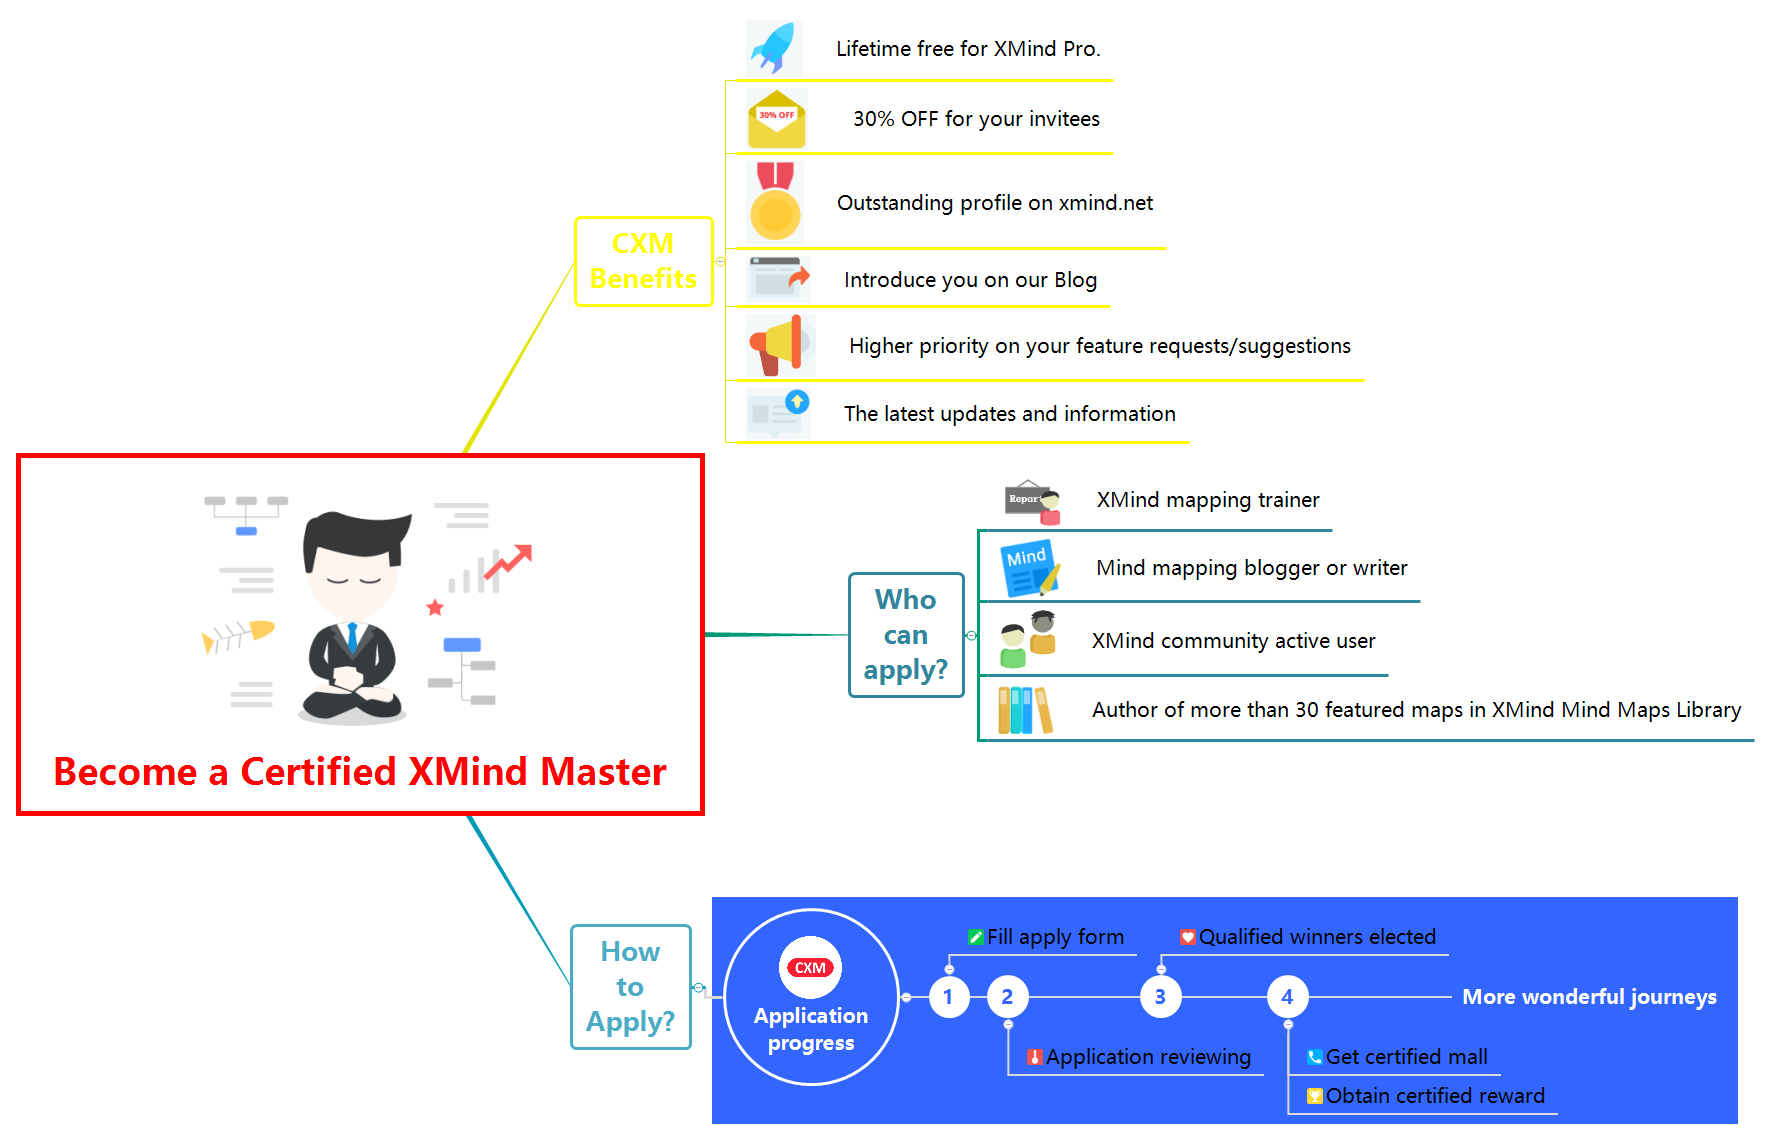 Become a Certified XMind Master